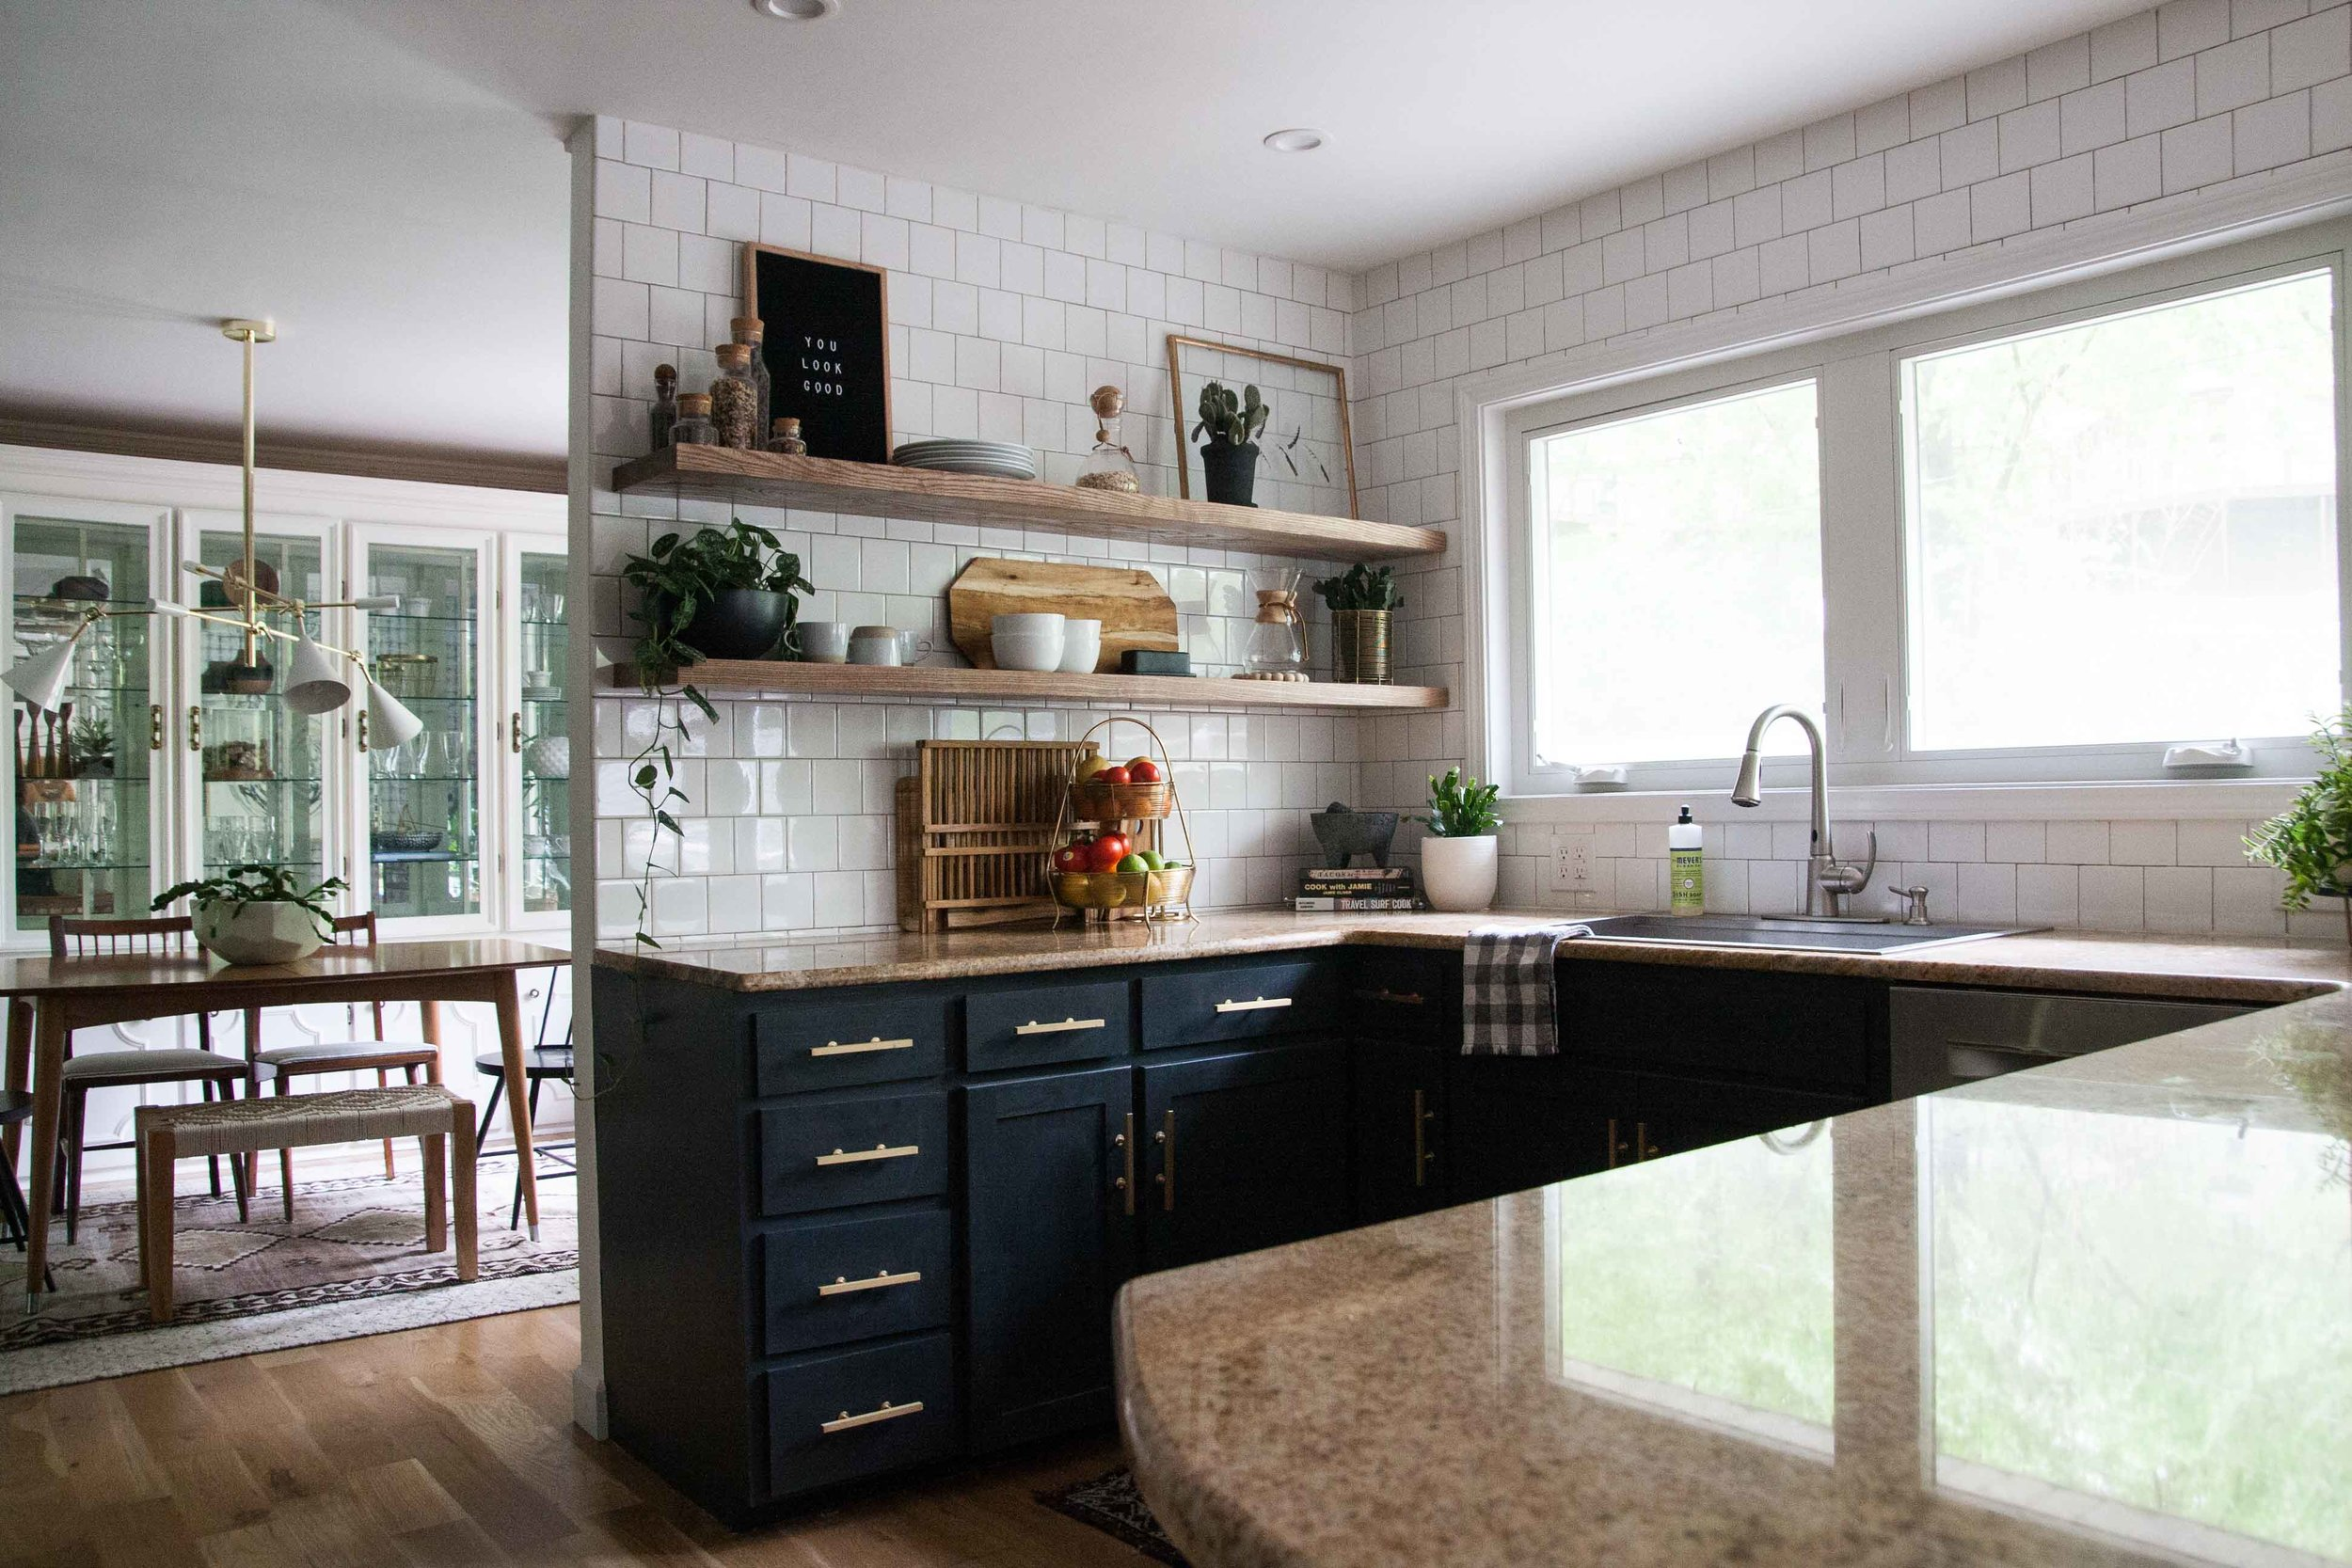 bigger_than_the_three_of_us_home_tour_bright_kitchen